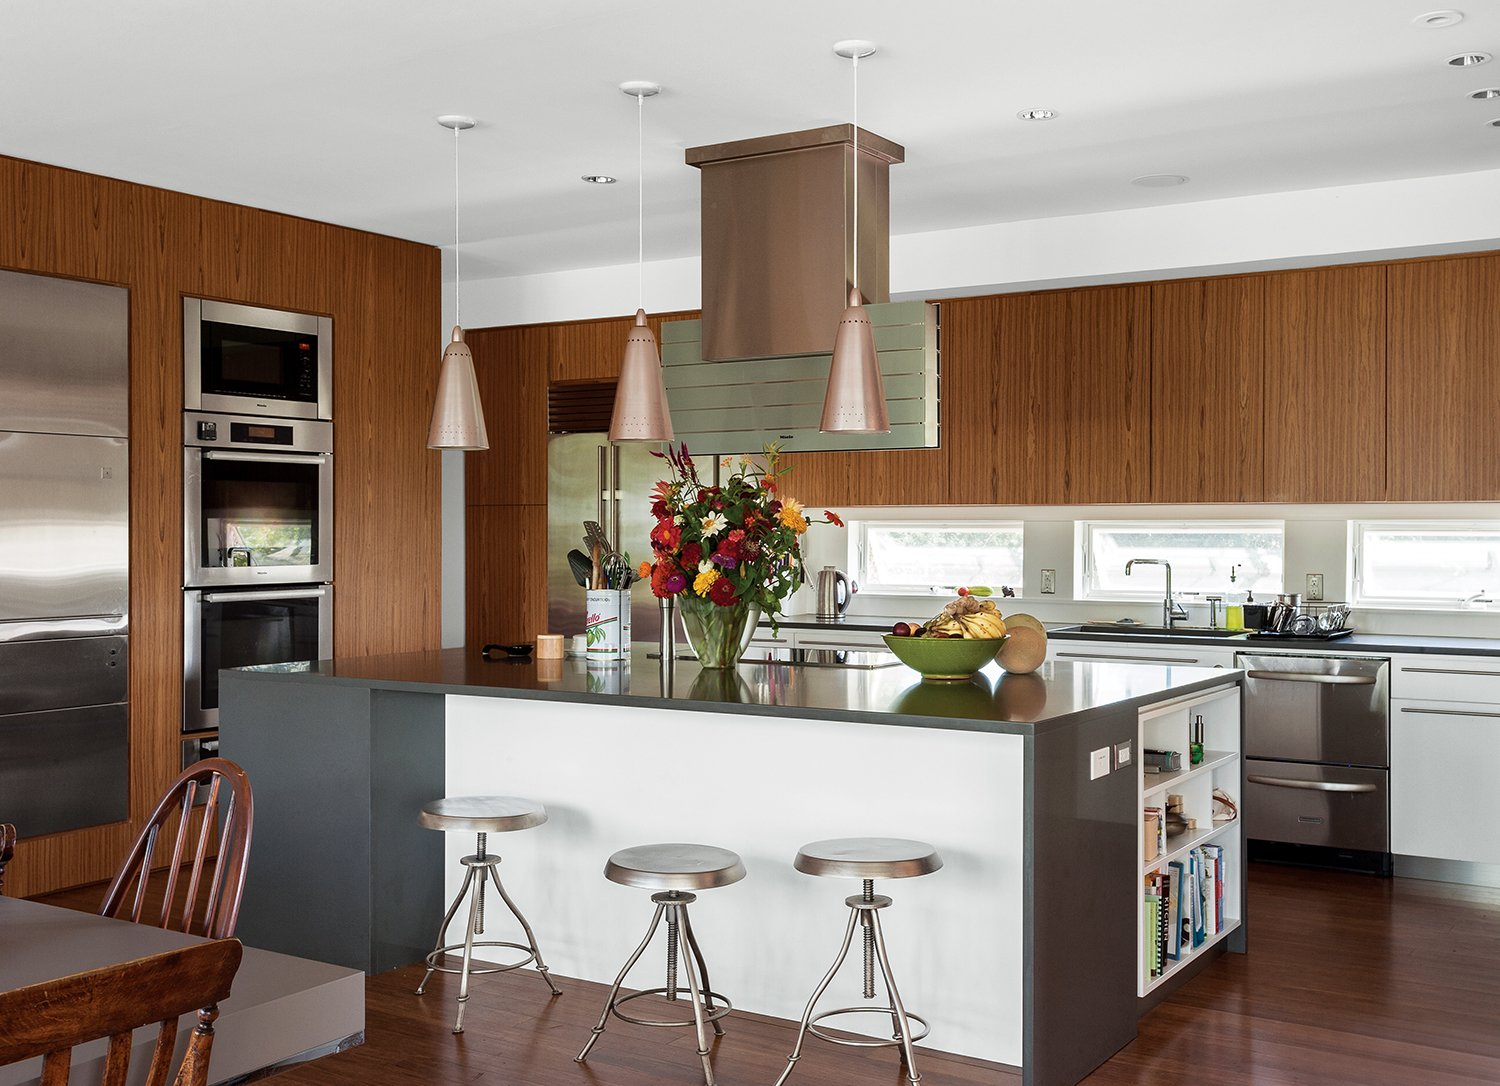 In the kitchen, teak-and- thermofoil cabinets and Caesarstone countertops mix with Miele appliances—wall ovens, induction cooktop, hood, and microwave—and a Sub-Zero refrigerator. The kitchen sink and faucet are by Blanco. The owners, who split their time between Fishers Island and Great Britain, found the vintage pendant lamps at Lassco architectural salvage. Tagged: Kitchen and Pendant Lighting.  Photo 8 of 12 in The Soothing Sounds of Nature Fill Up This Island Prefab